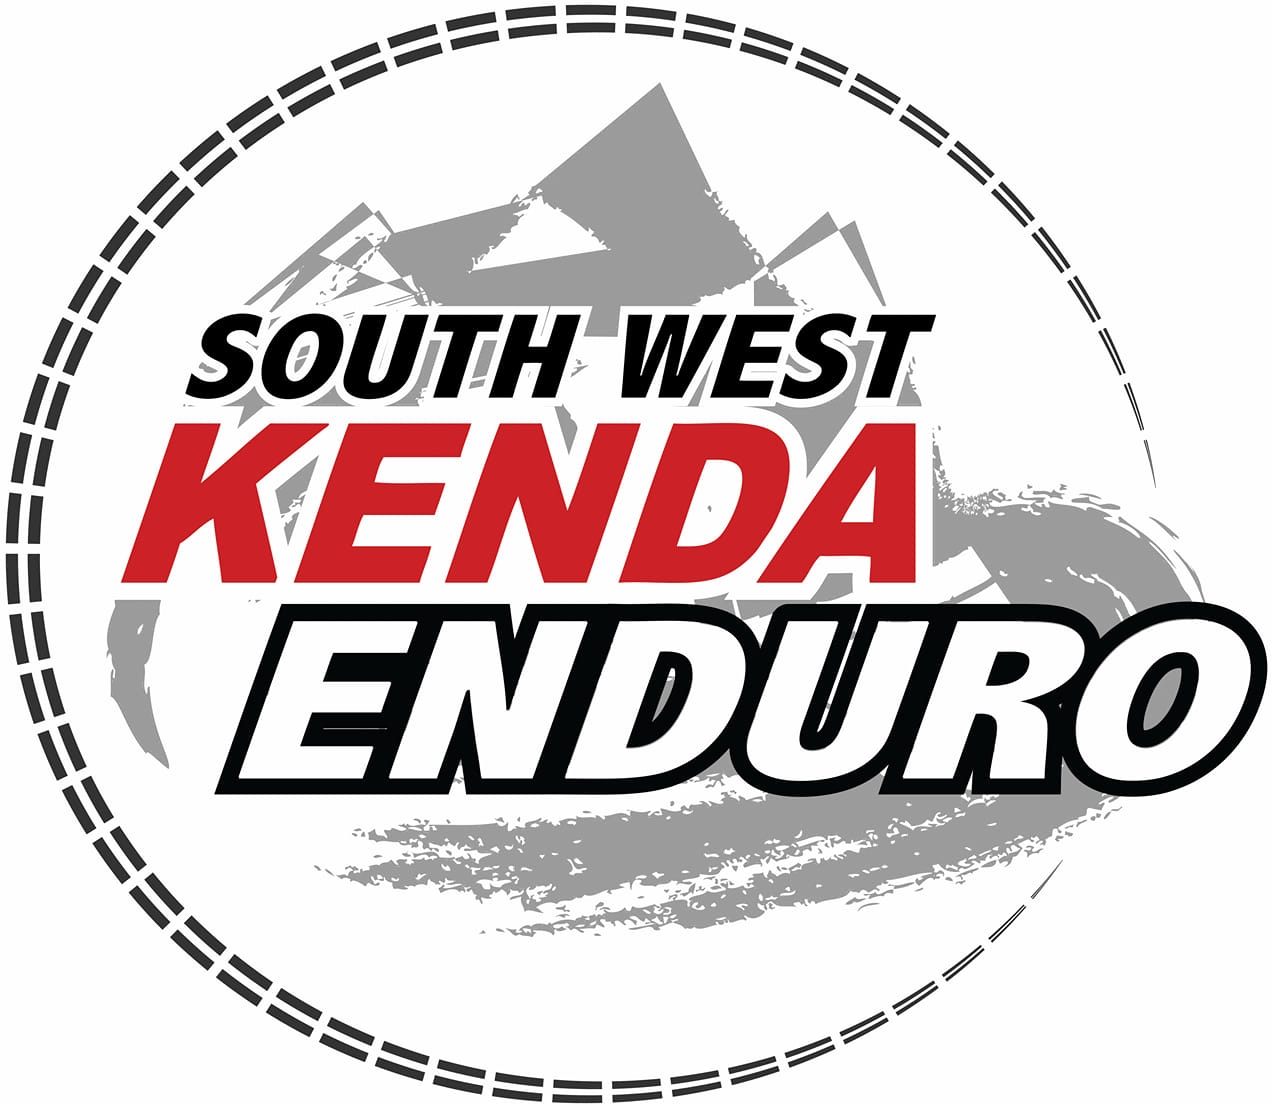 South West Enduro